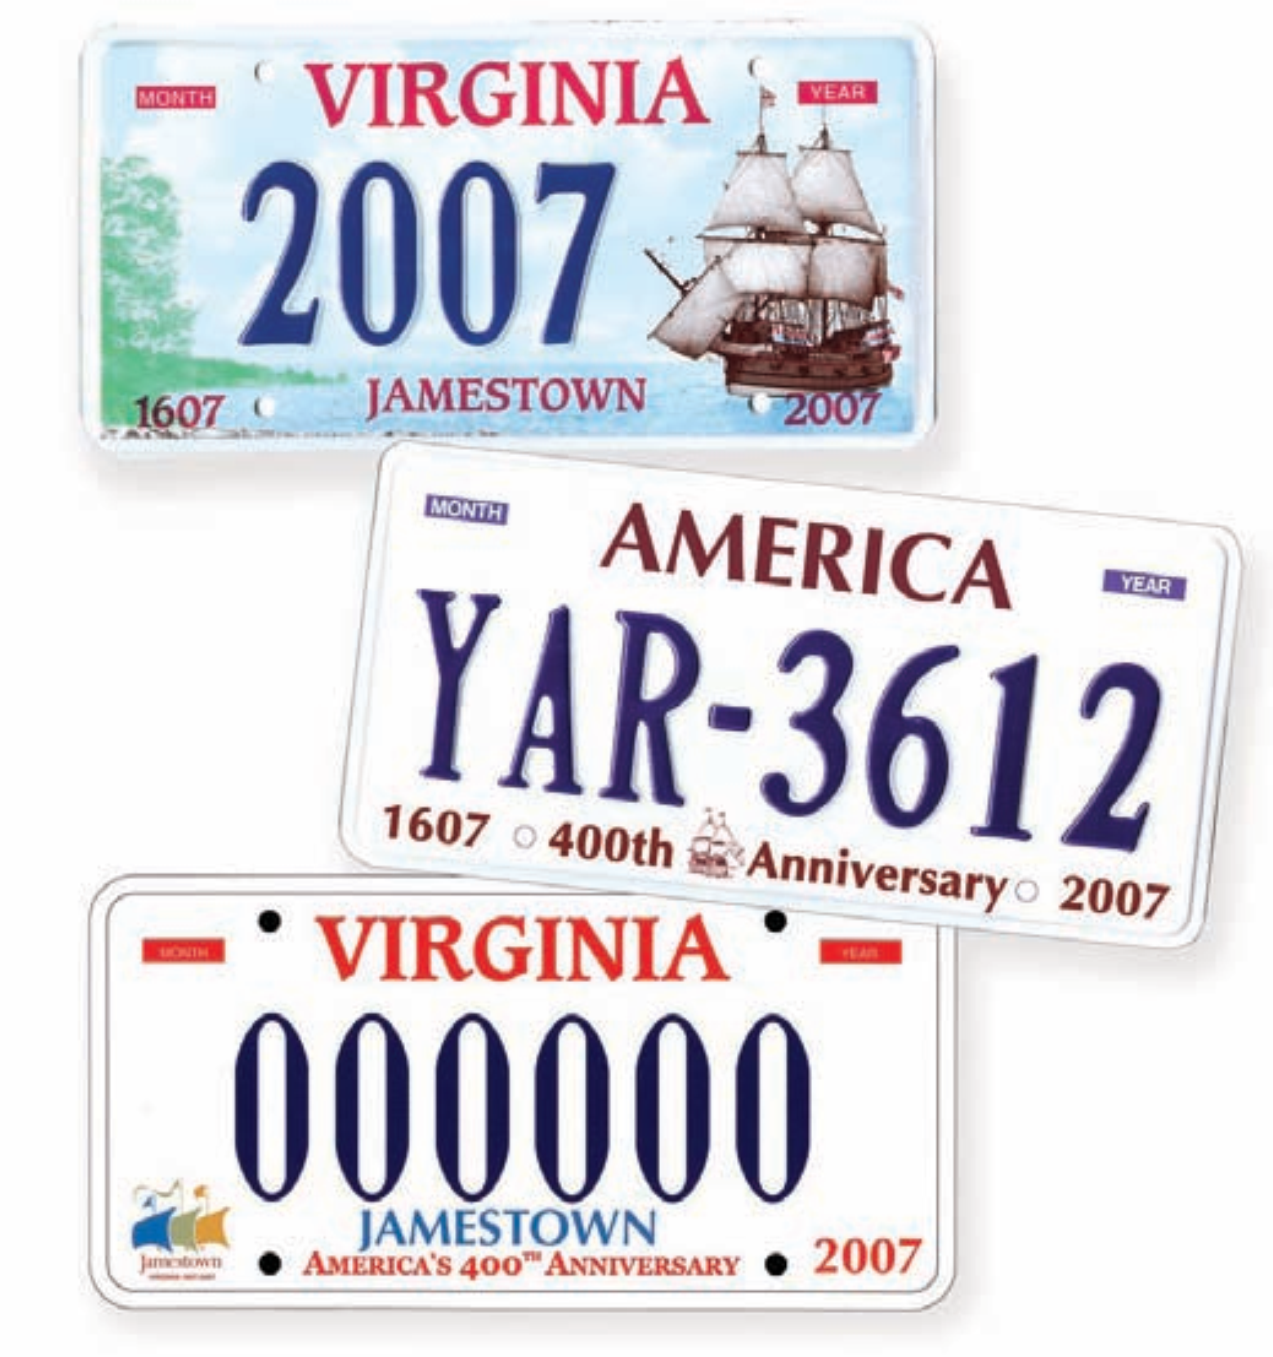 Special Jamestown license plates first became available for motorists in 1997 and continued throughout the quadricentennial period.